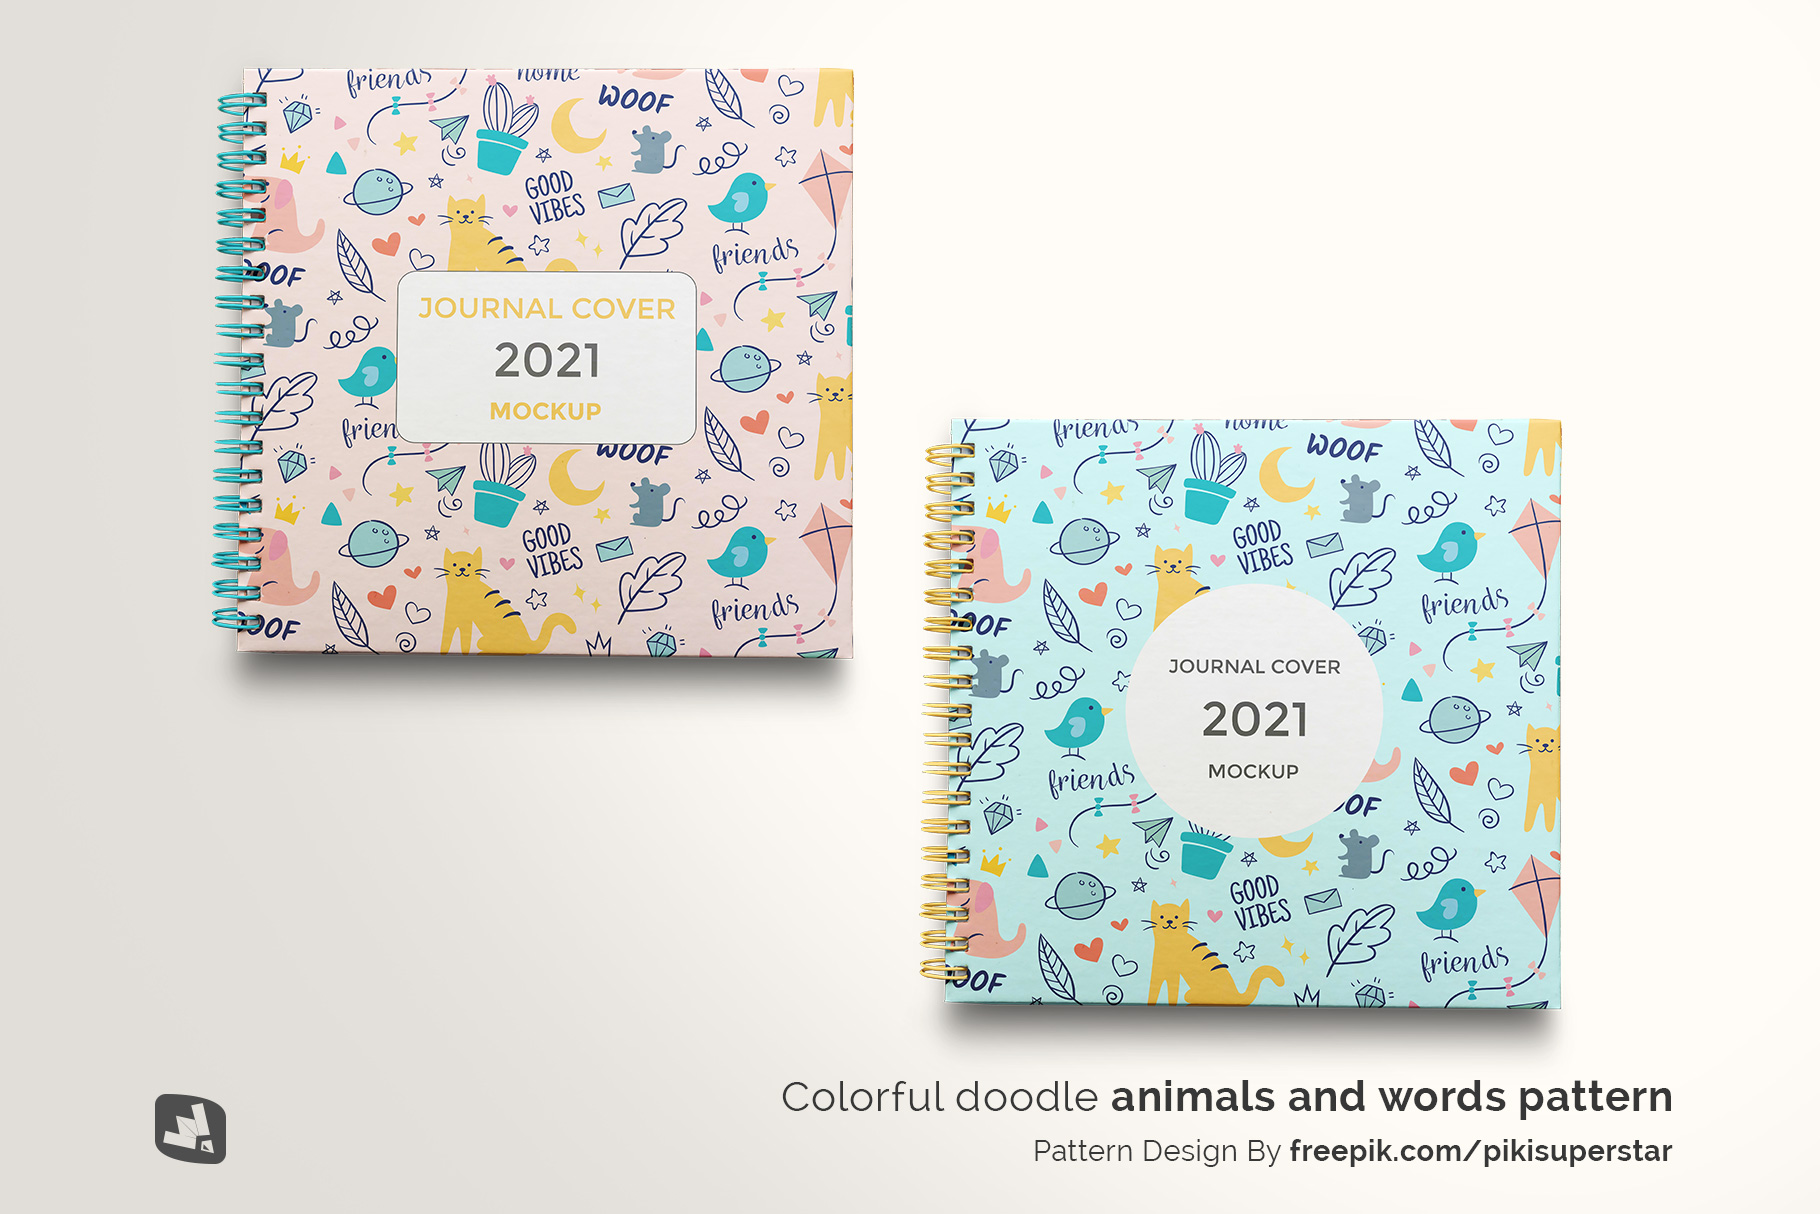 designer's credit of the top view spiral journal cover mockup